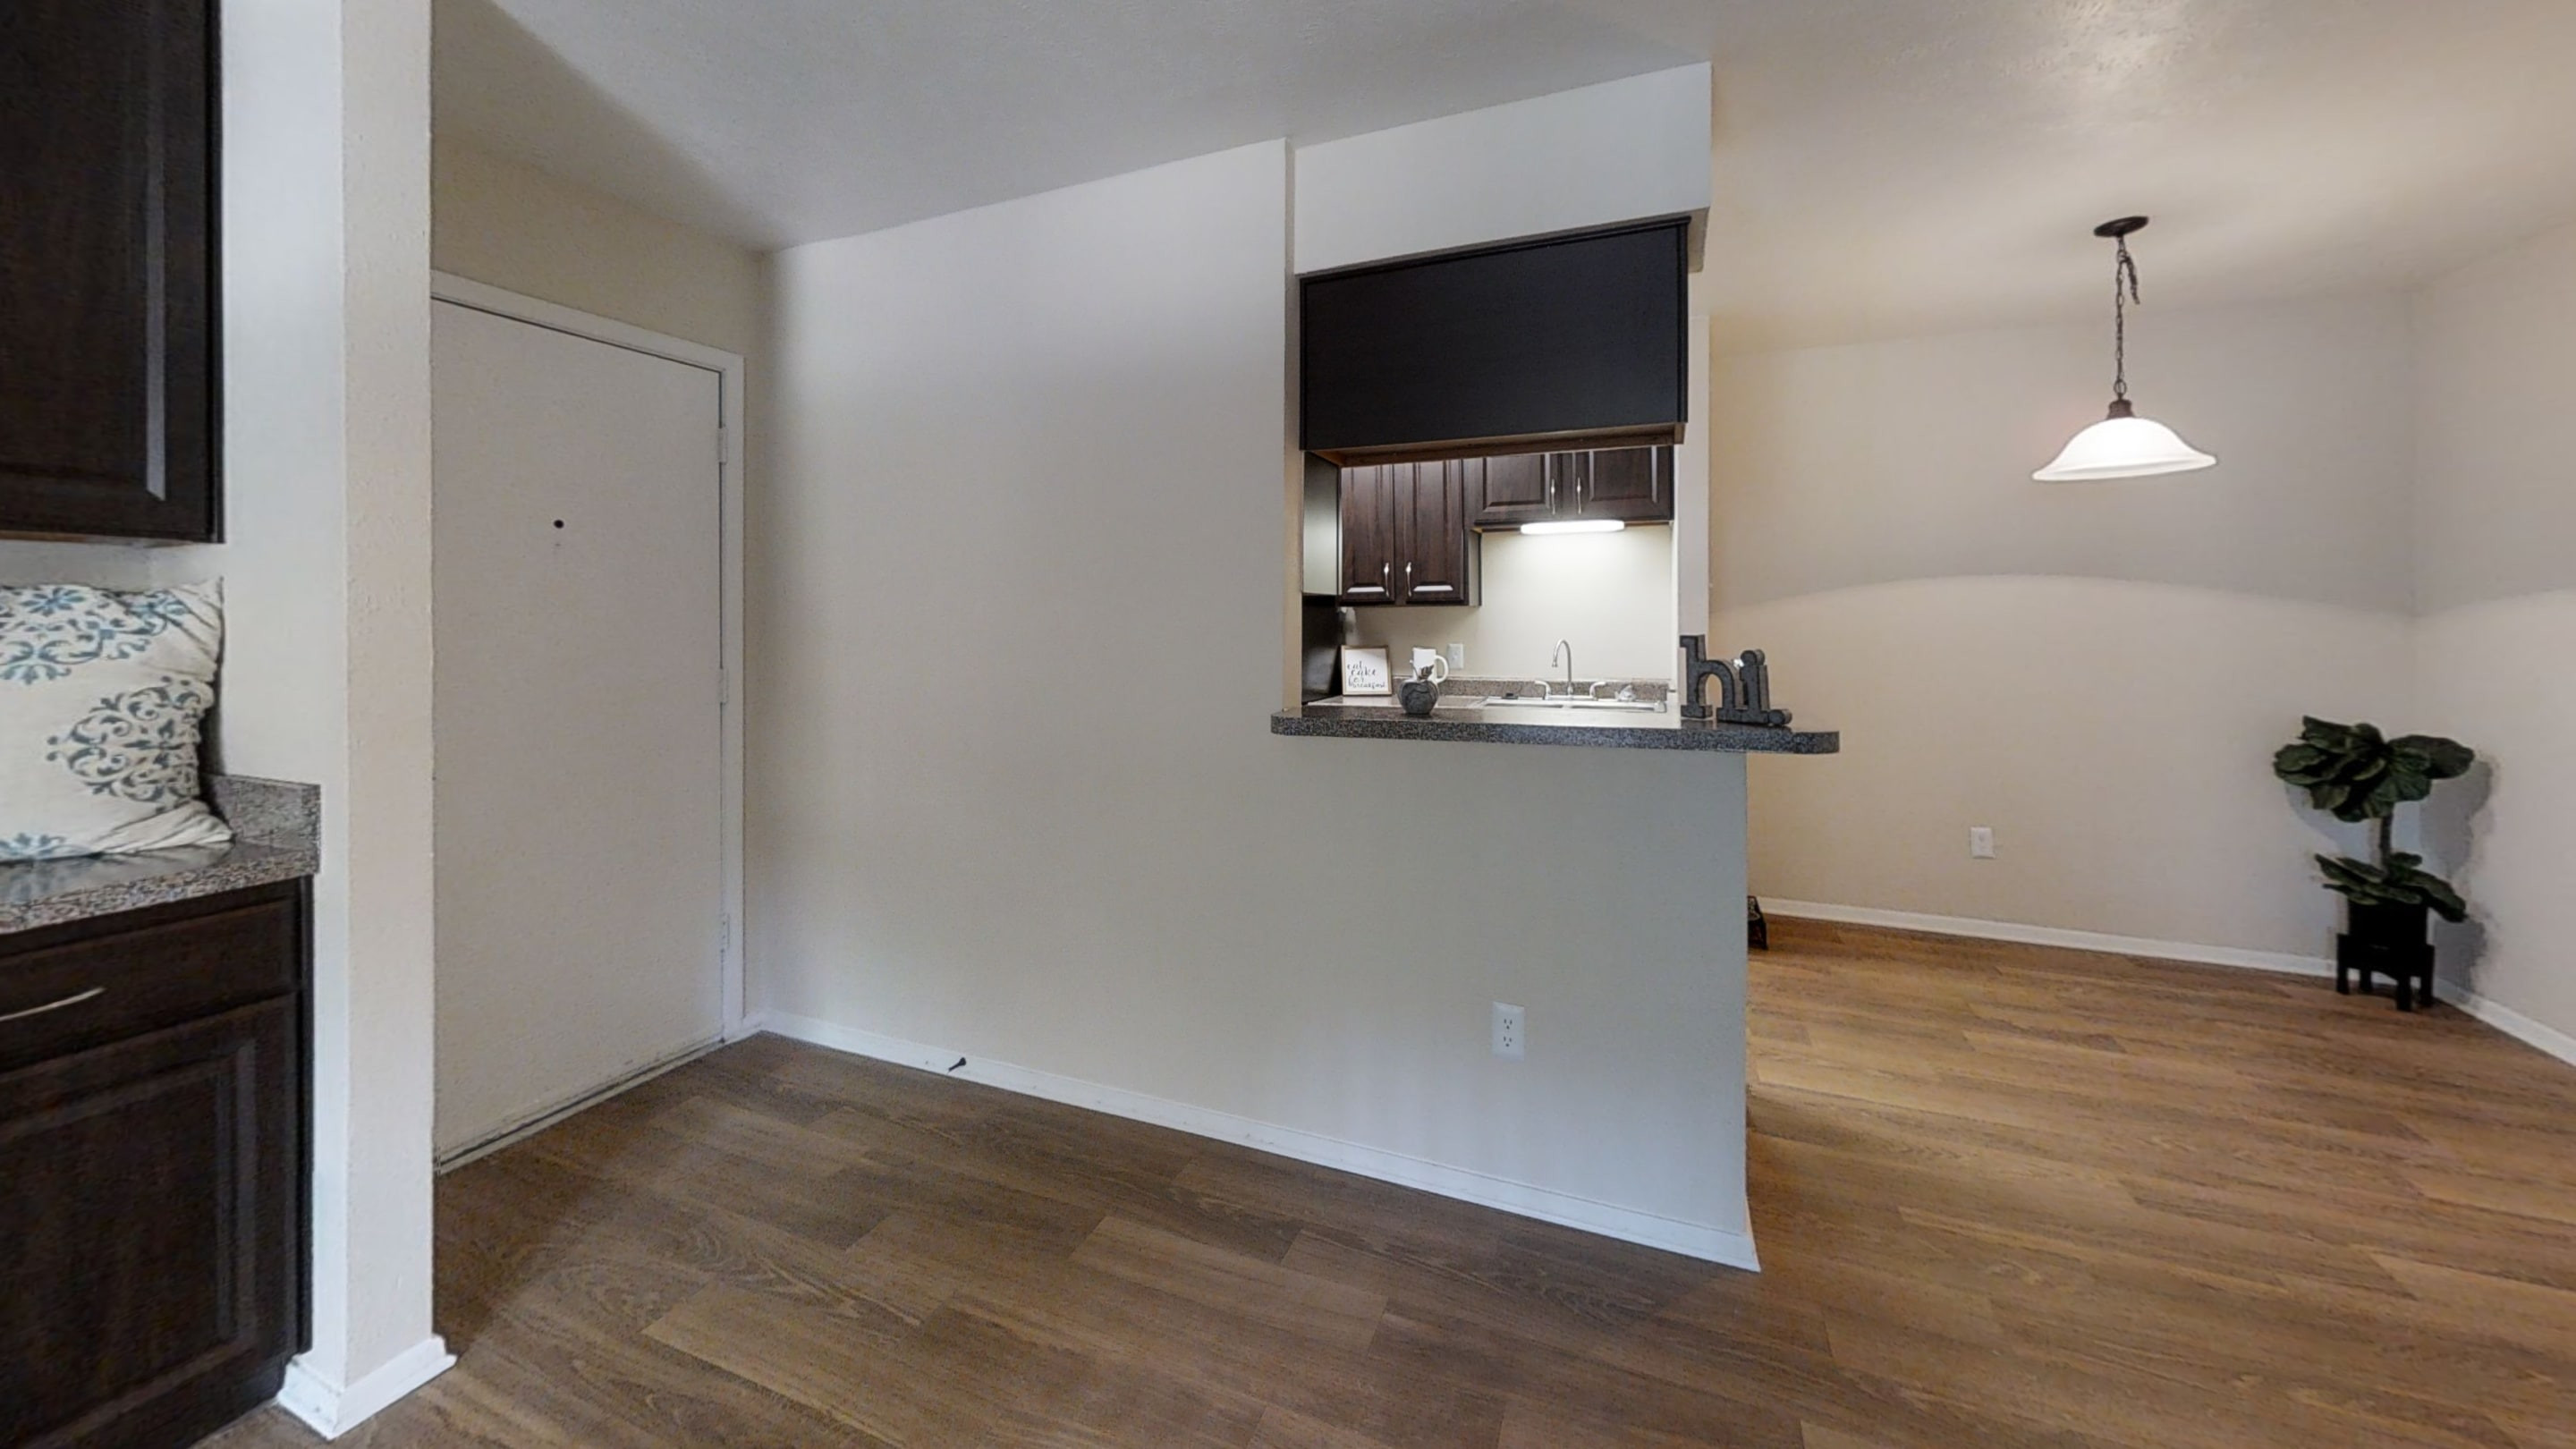 pet friendly hardwood floors of 100 best apartments in fort worth tx with pictures regarding 9990ae1e7c06fcd90d1b3d7f07839569